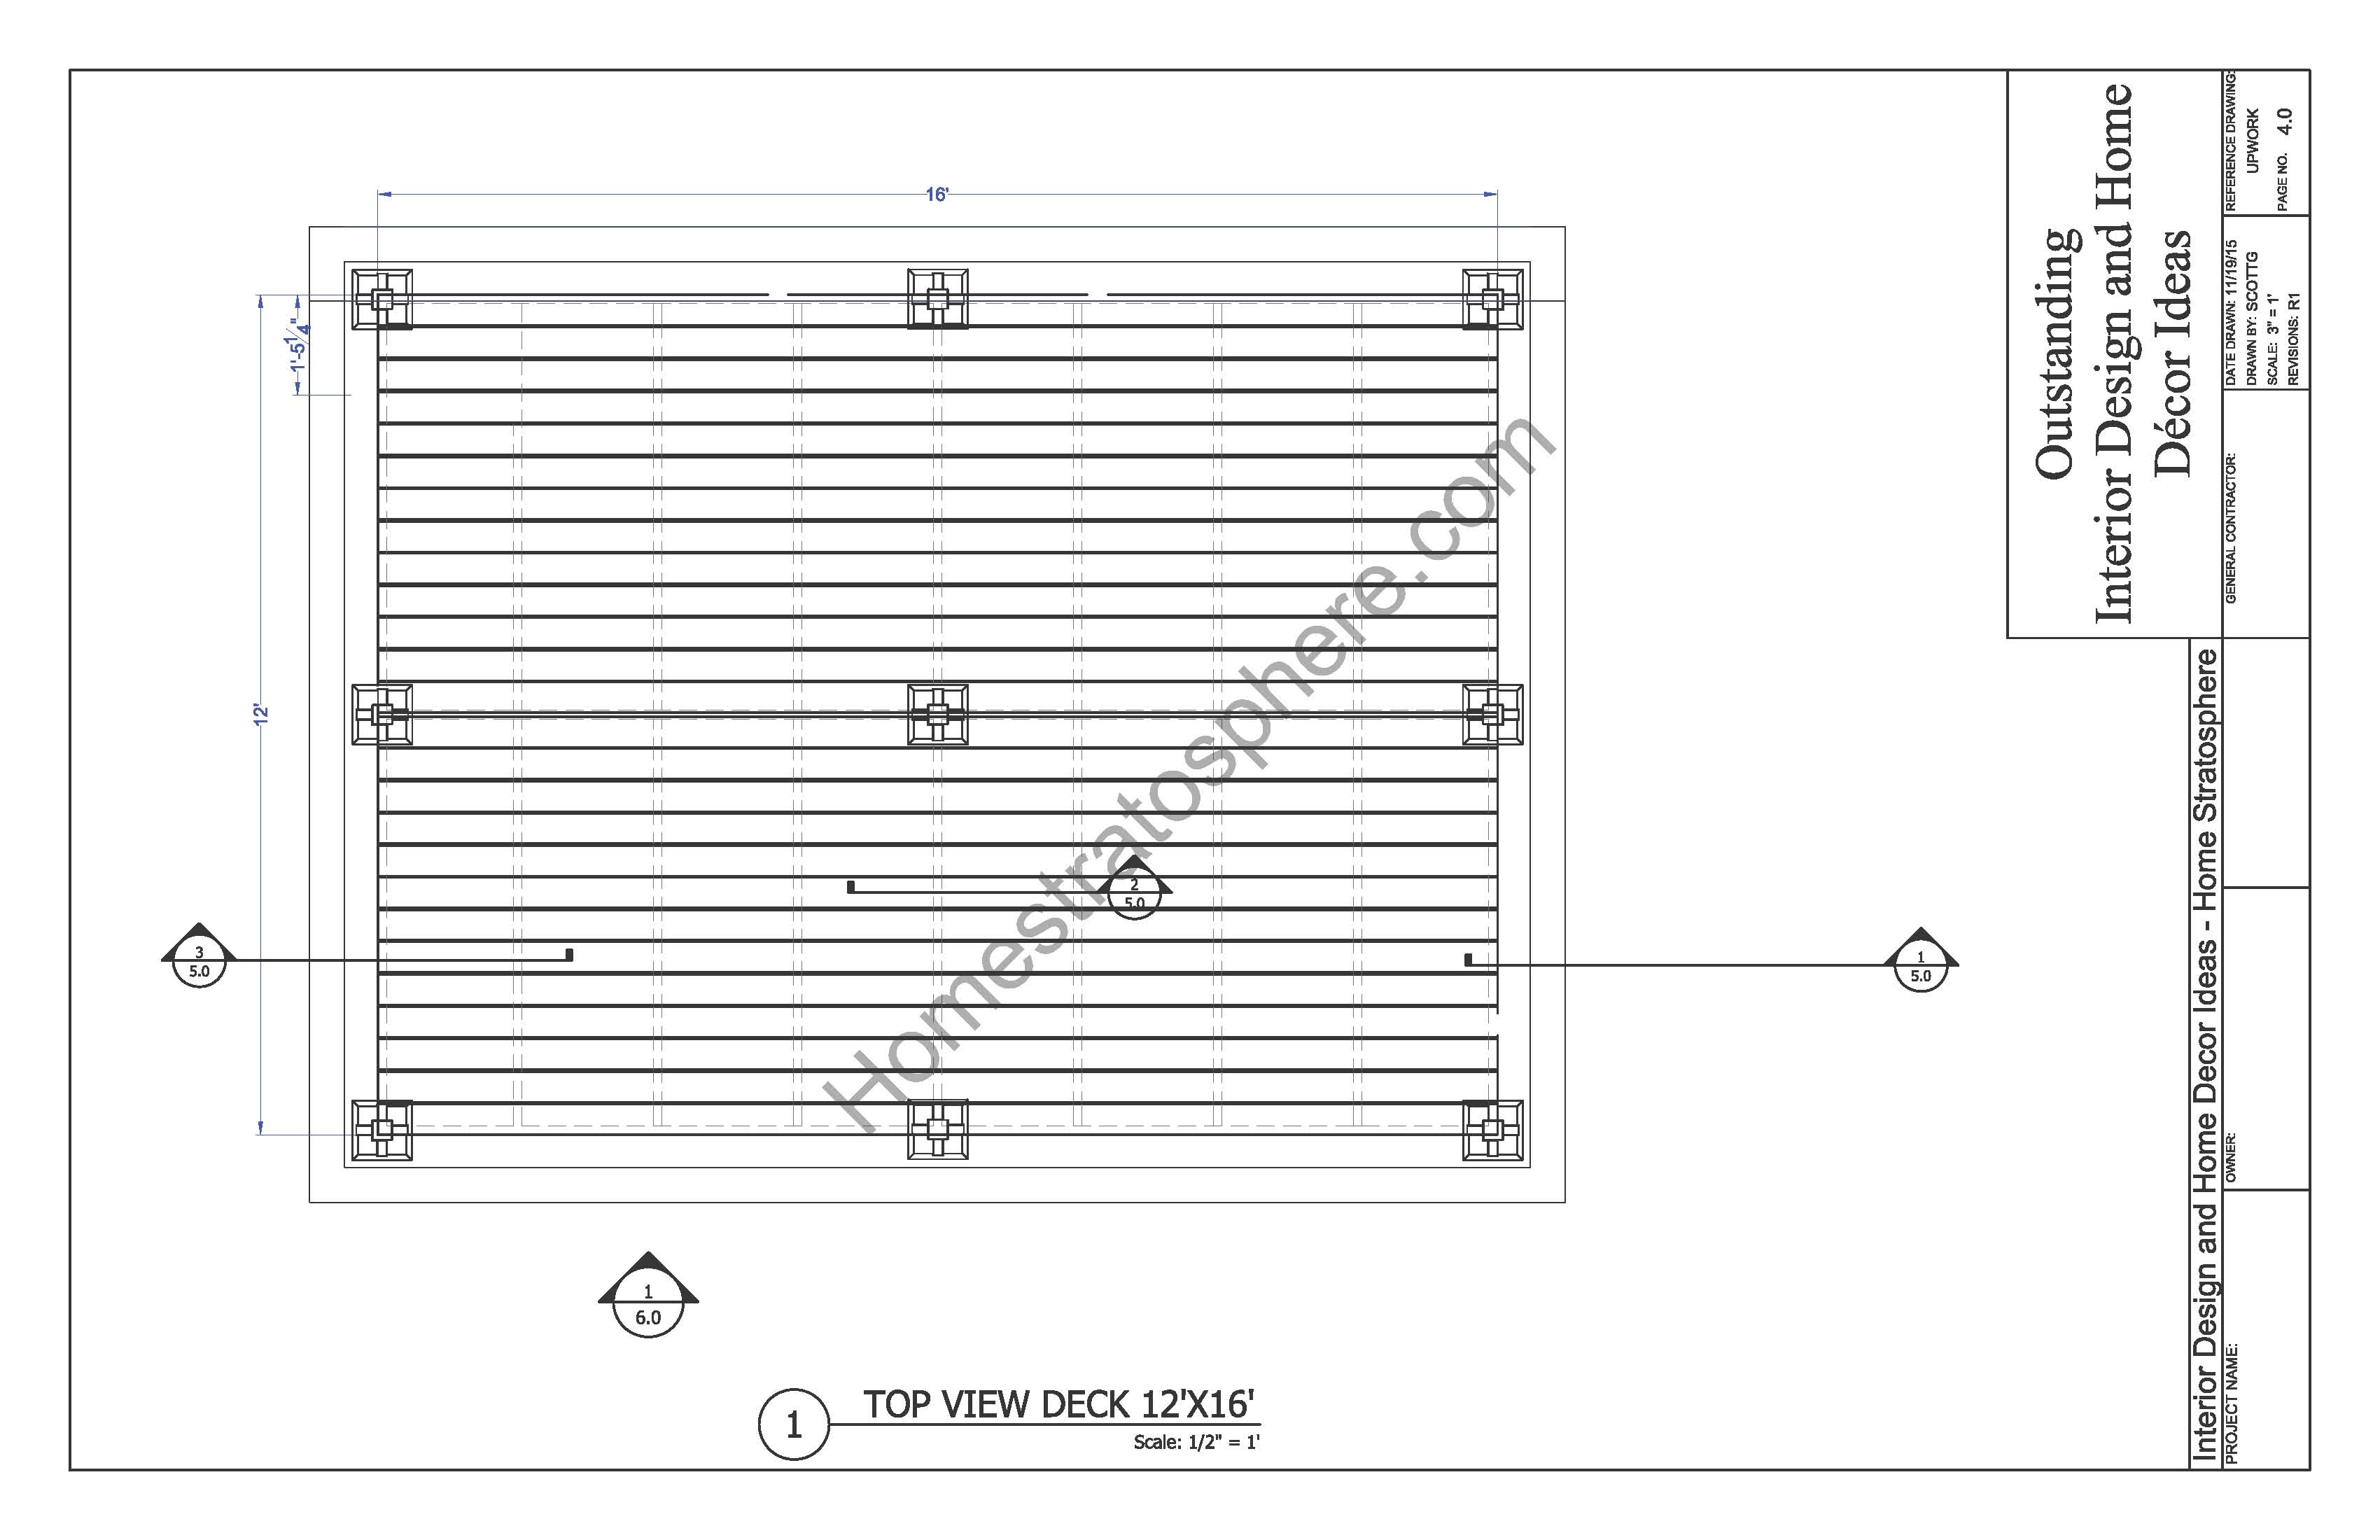 Free ground flat deck plan with pdf blueprint download for 12x16 deck plans free